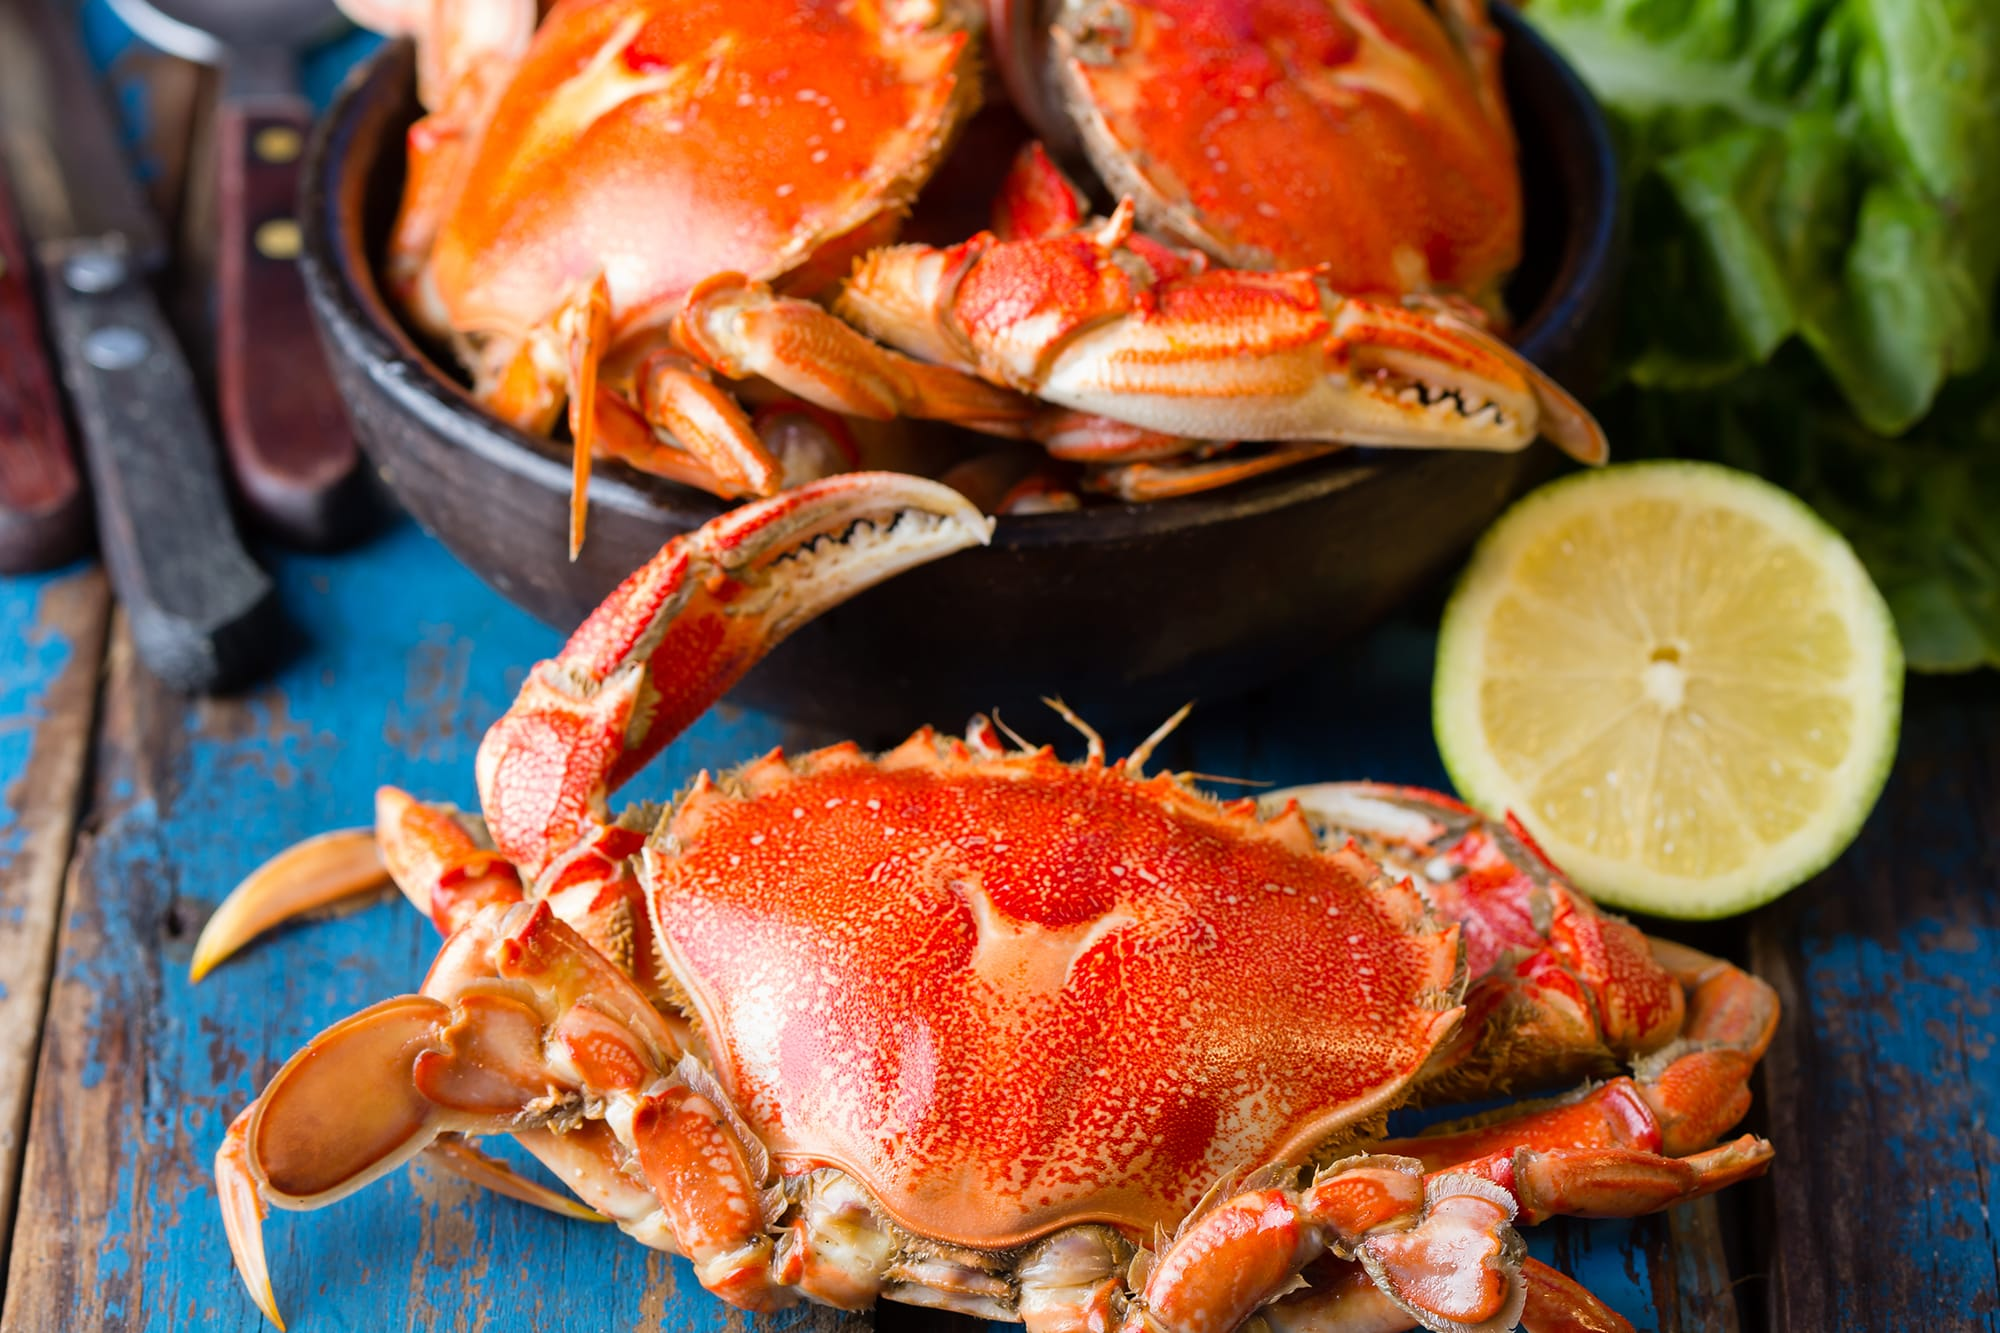 5 of Maryland's Best Places to Chow Down on Crab This Summer